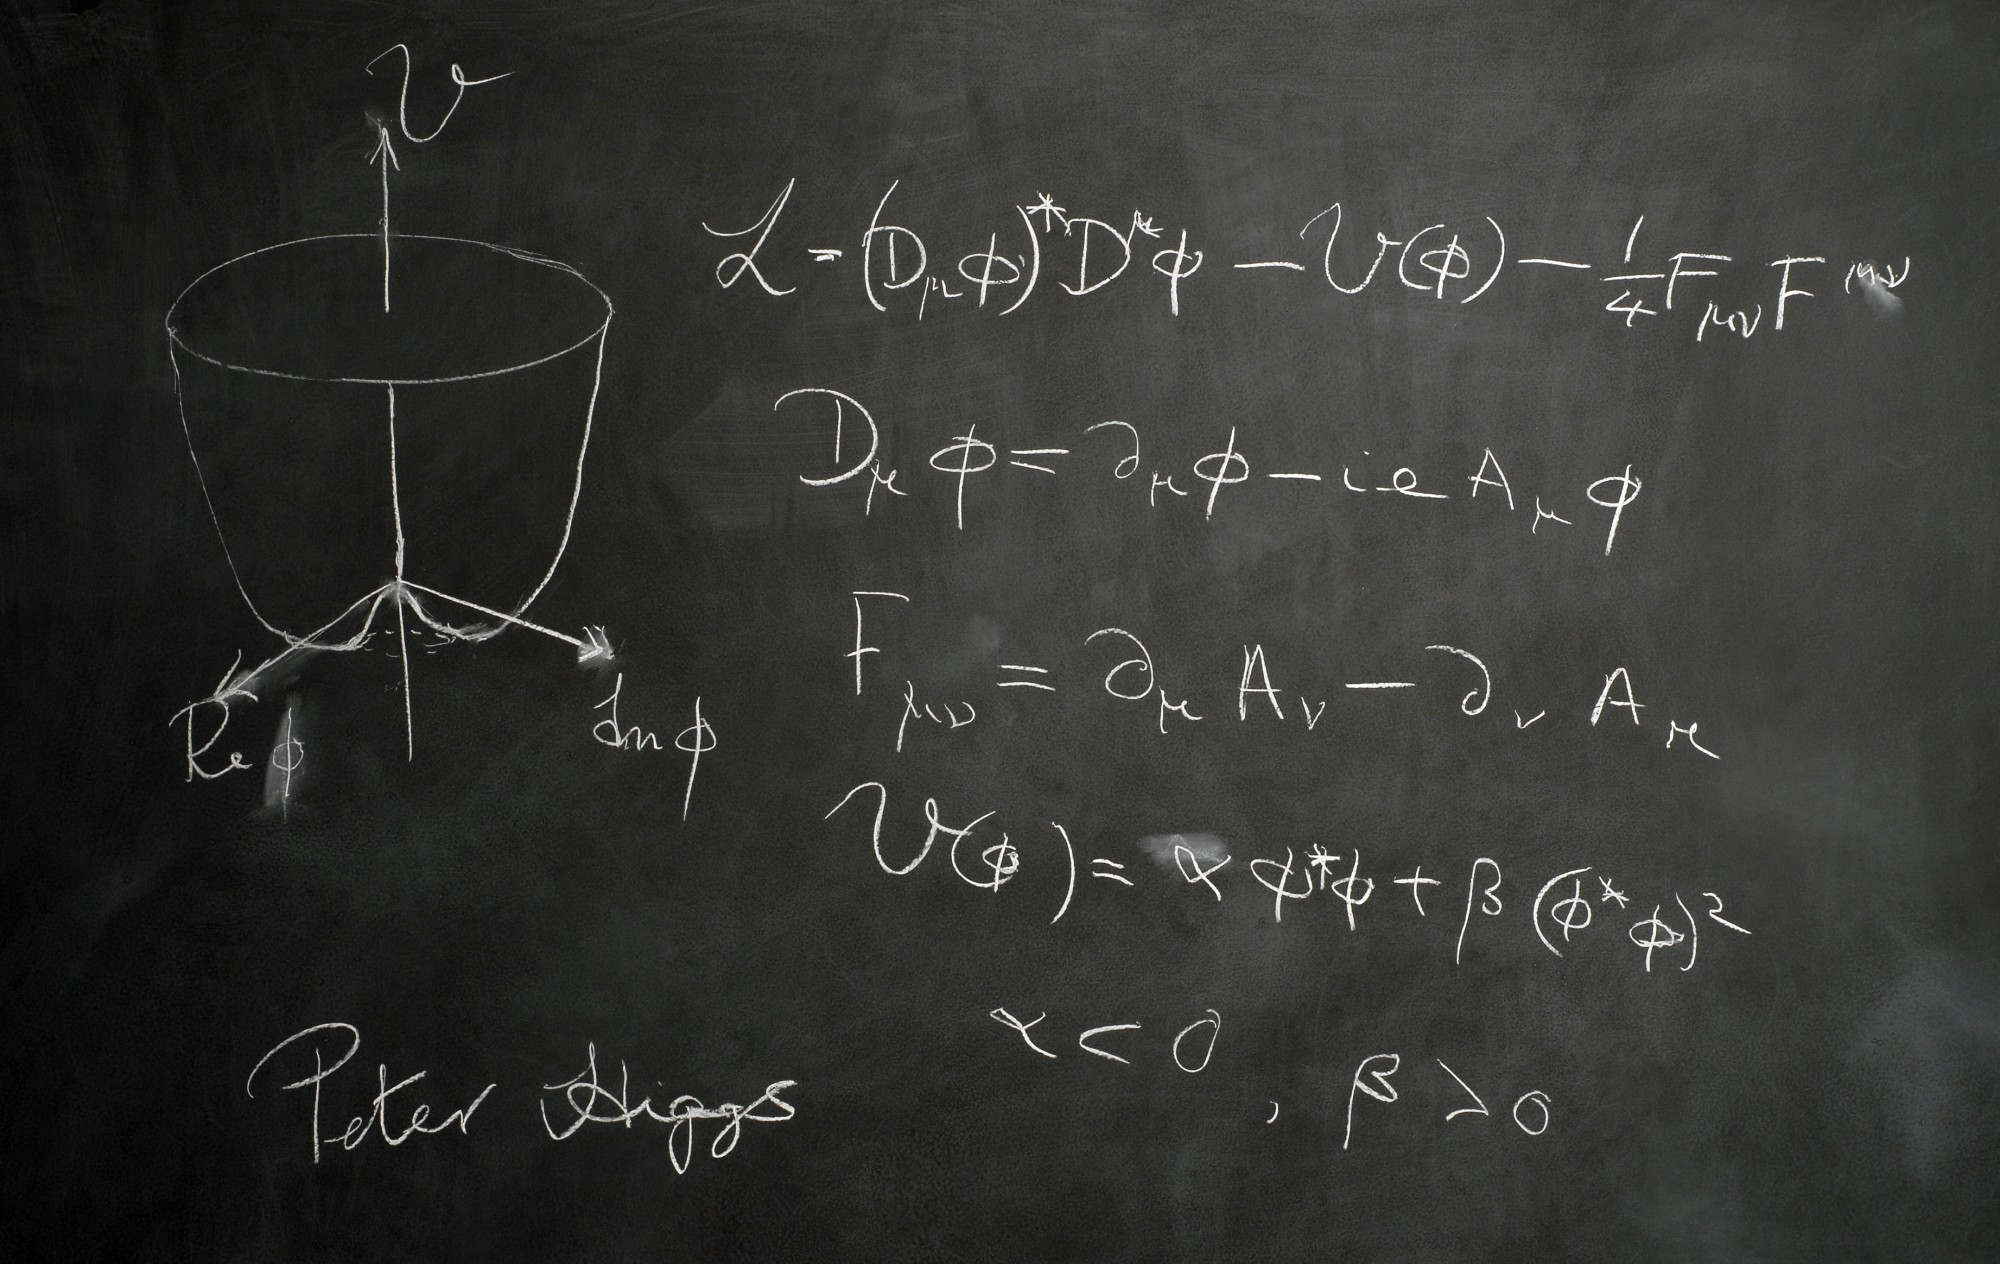 Blackboard prepared by Peter Higgs for photo-shoot on 17 June 2009.